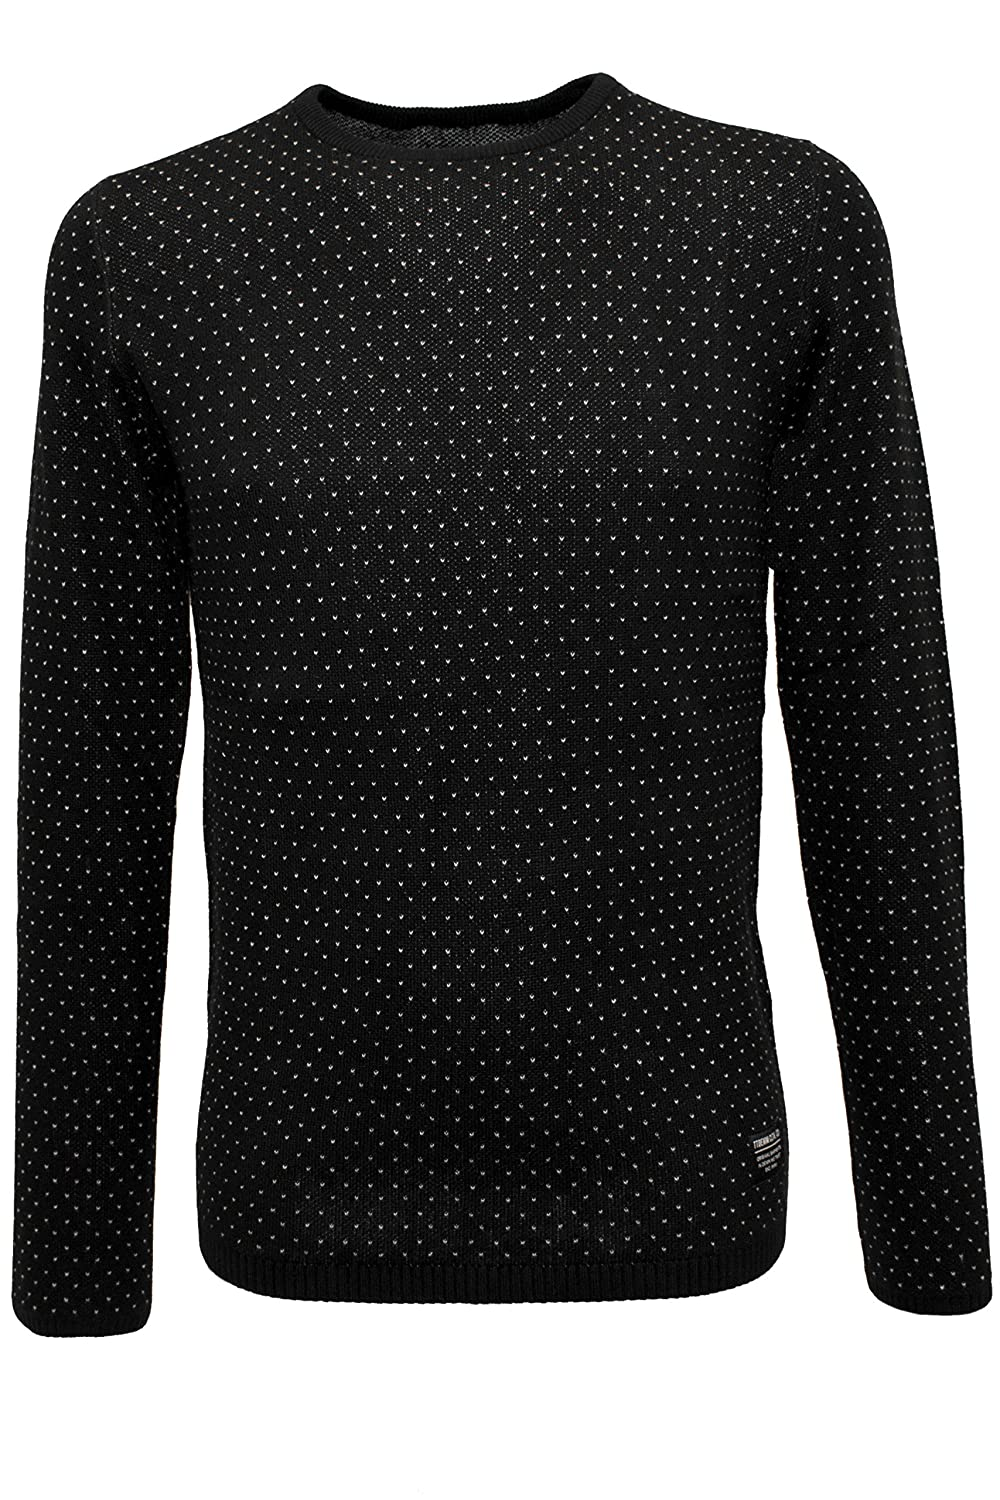 TOM TAILOR Men's Jumper Long Sleeve Jumper